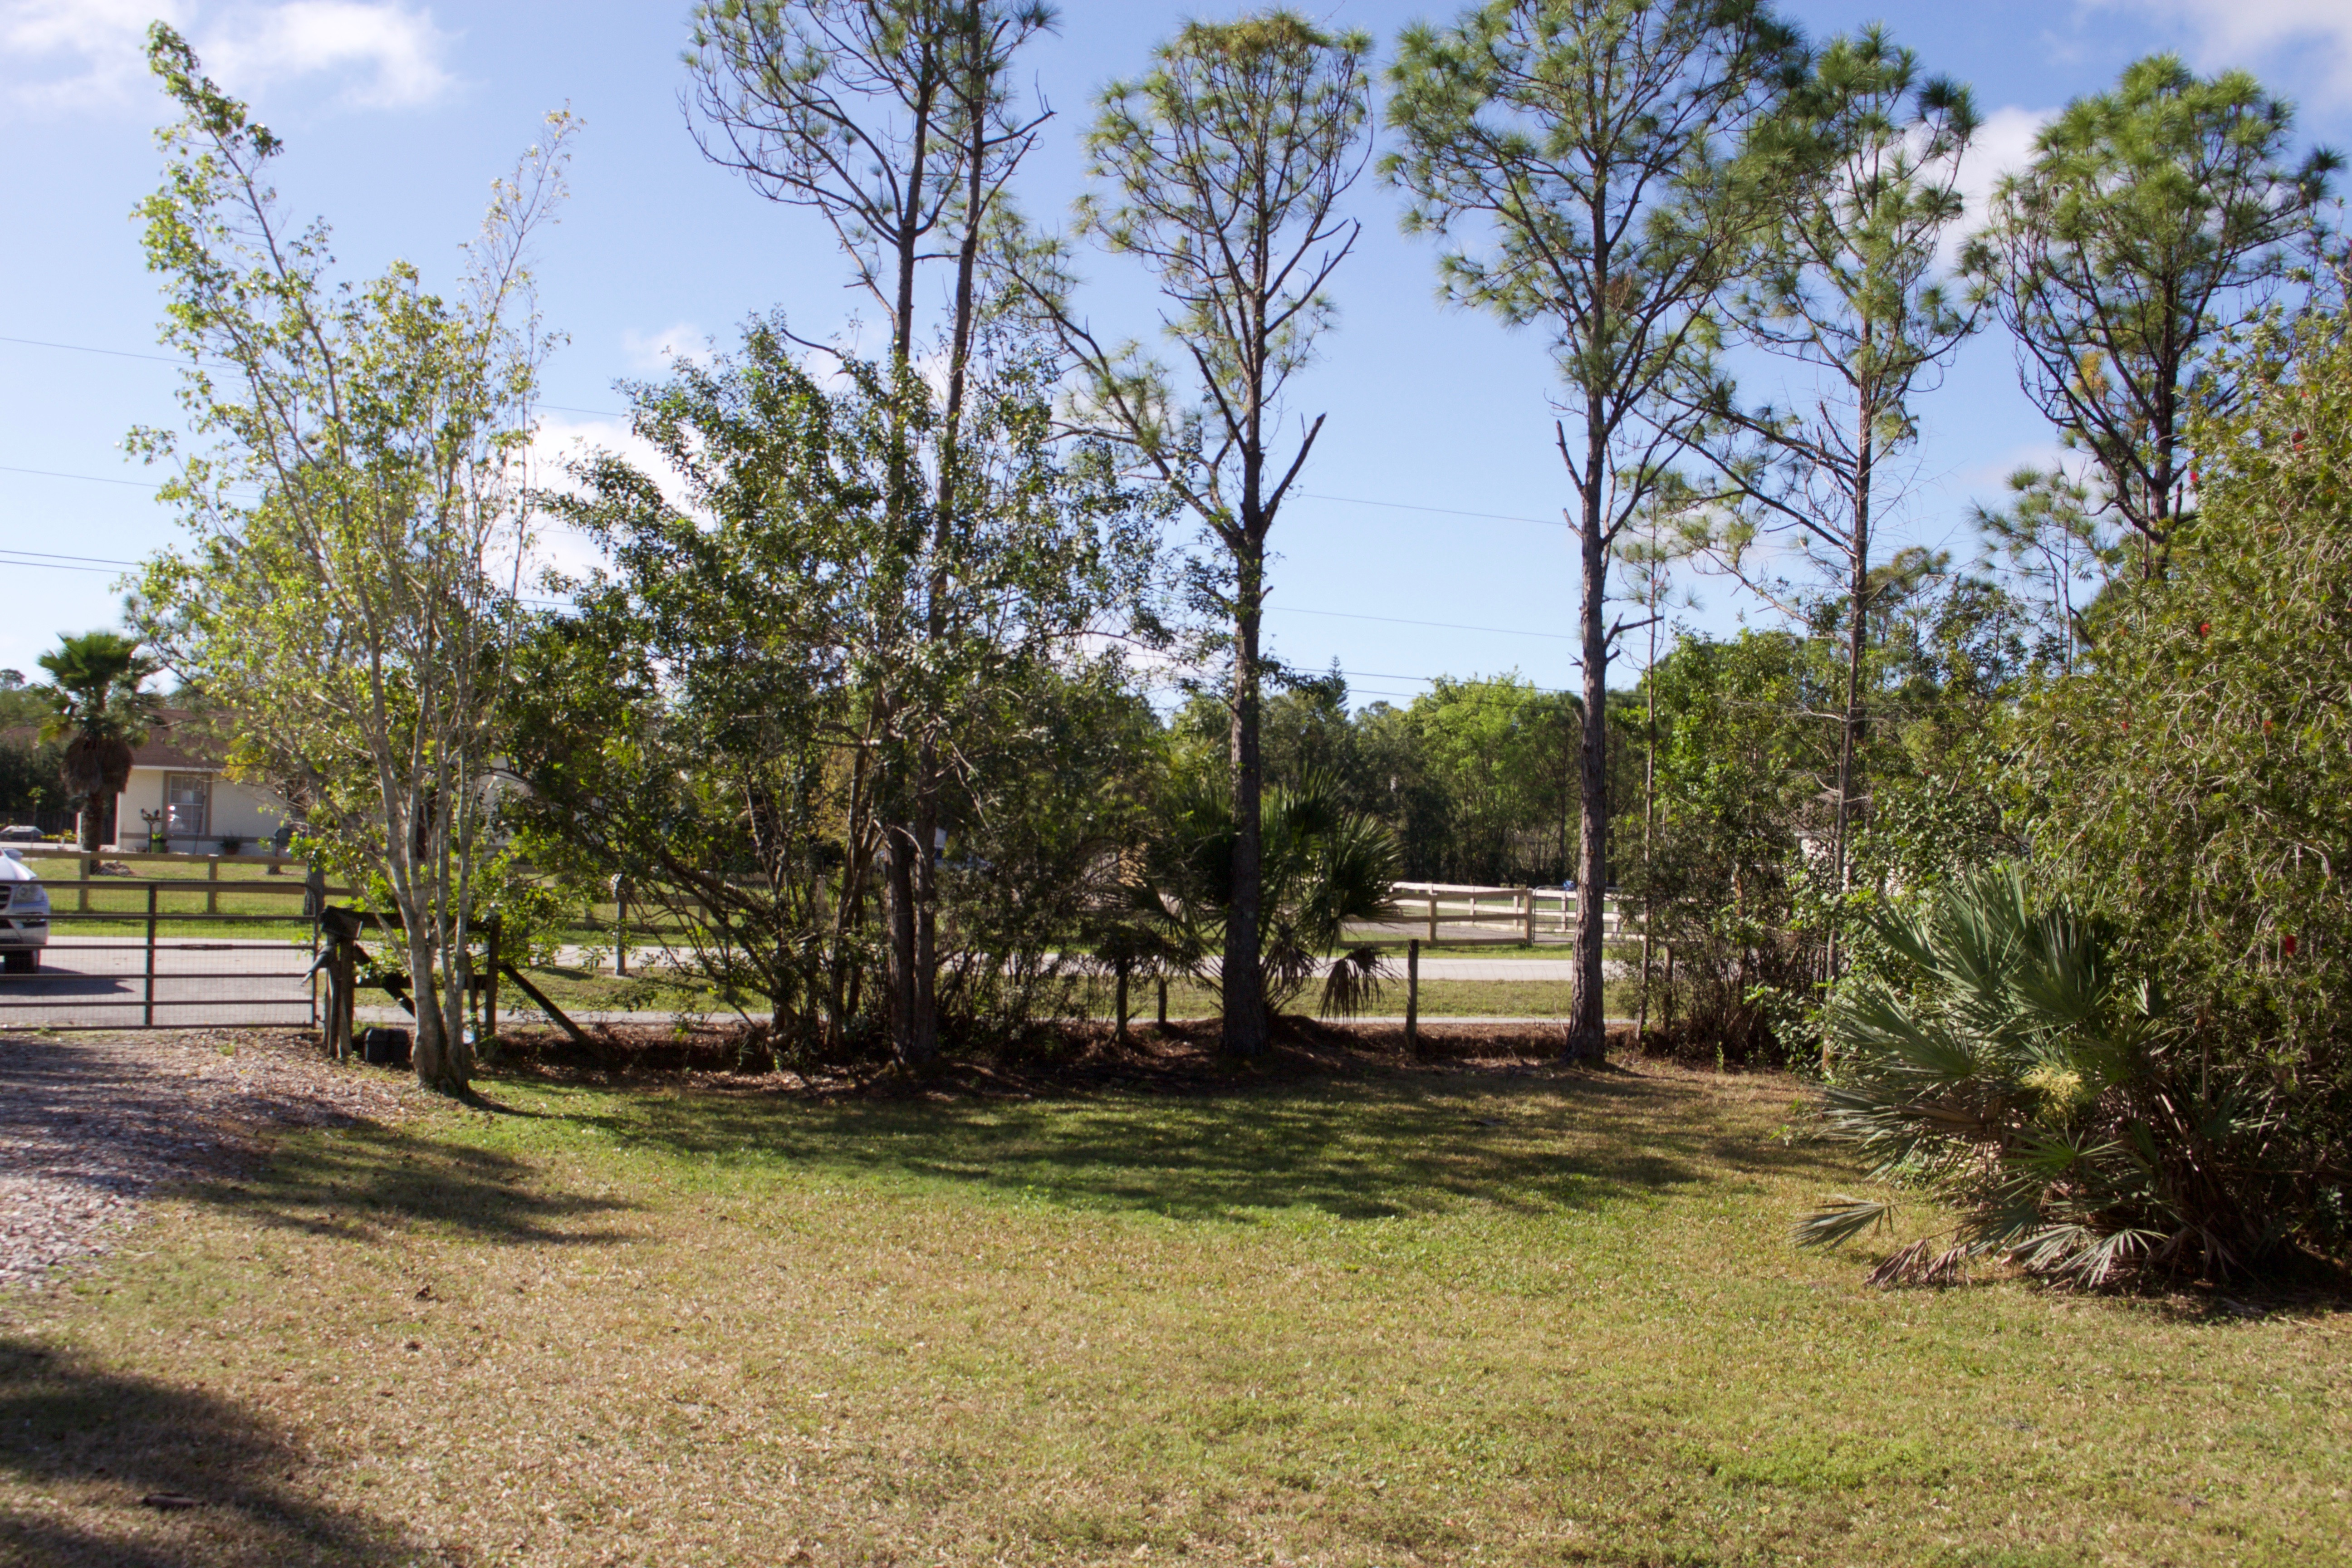 Loxahatchee real estate and homes for sale in Loxahatchee.